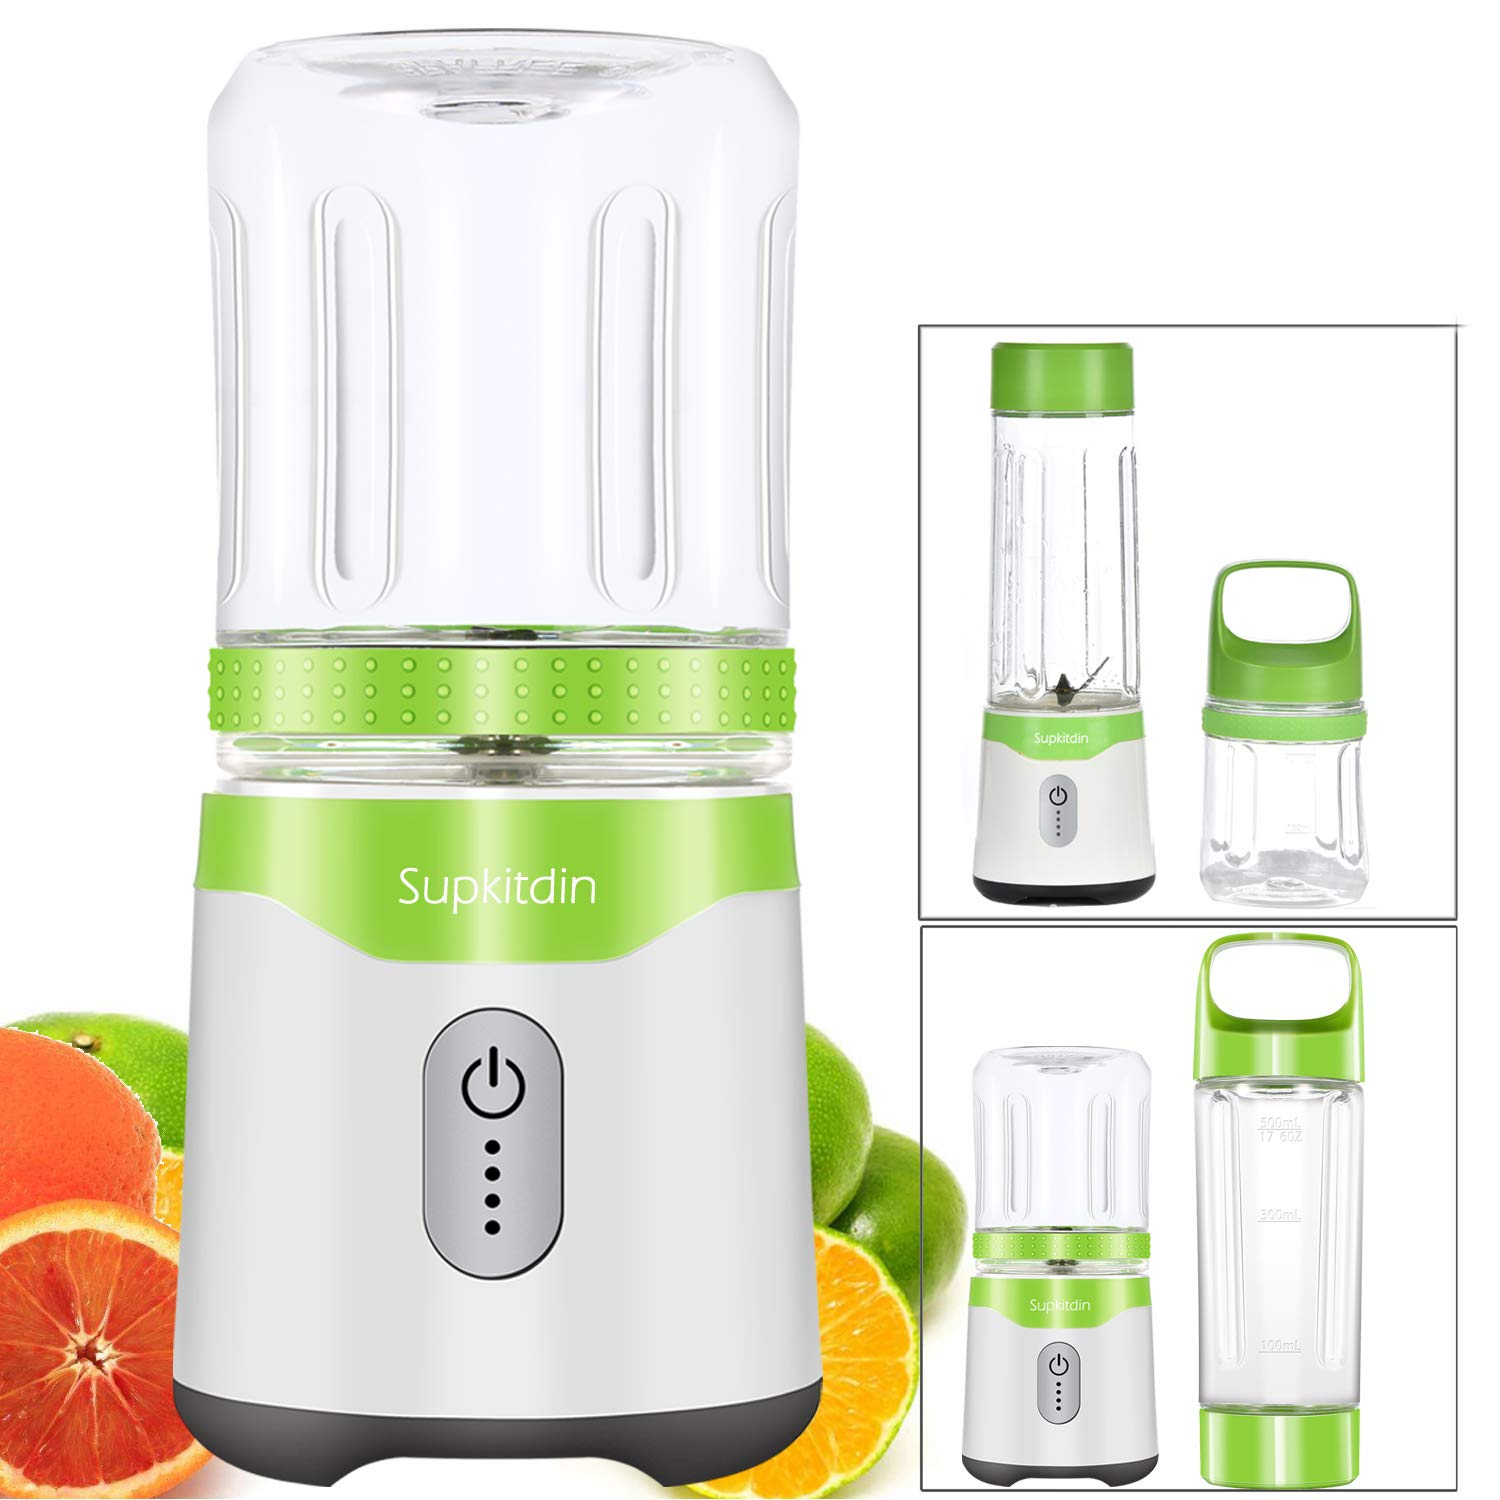 Personal Blender, Supkitdin Portable Blender for Shakes and Smoothies,With 2 FDA Approved Cups, Rechargeable, Powerful 6 Blades for Superb Mixing HuiTai HTPB001